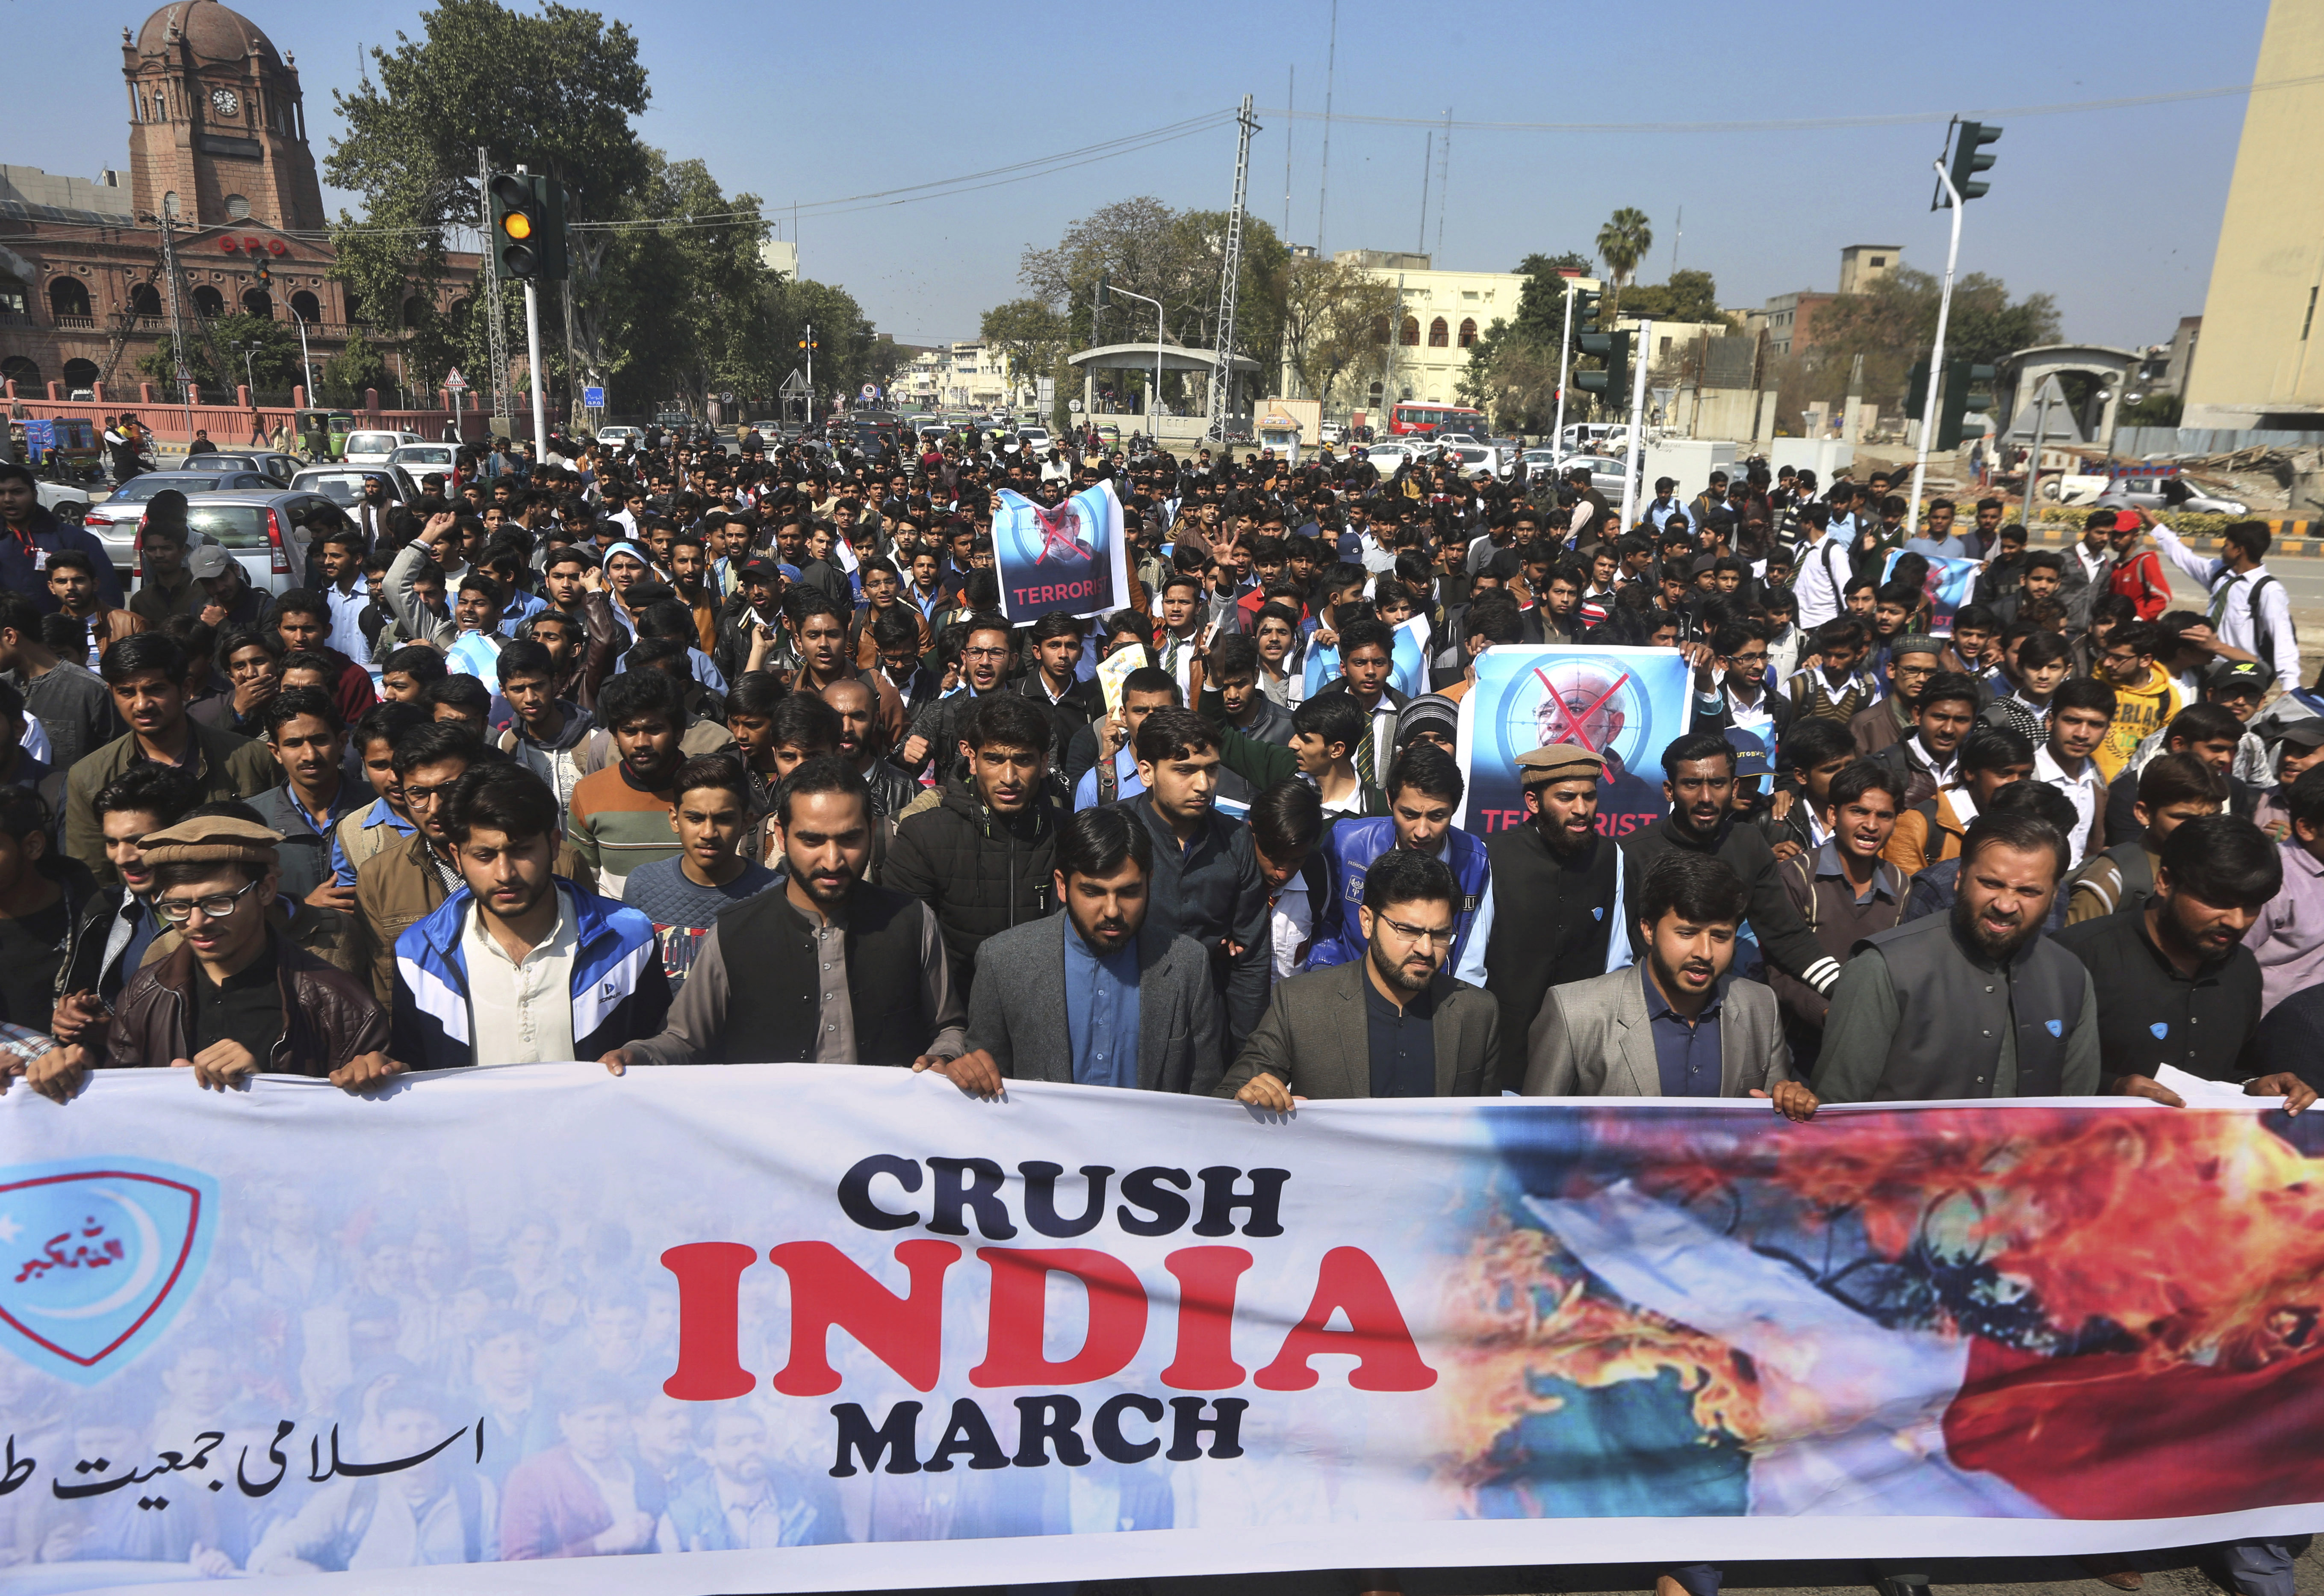 Supporters of a Pakistani religious group Islami Jamiat-e-Talaba hold a rally against India, Wednesday, Feb. 27, 2019. Pakistan's air force shot down two Indian warplanes after they crossed the boundary between the two nuclear-armed rivals in the disputed territory of Kashmir on Wednesday and captured one Indian pilot, a military spokesman said. (AP Photo/K.M. Chaudary)